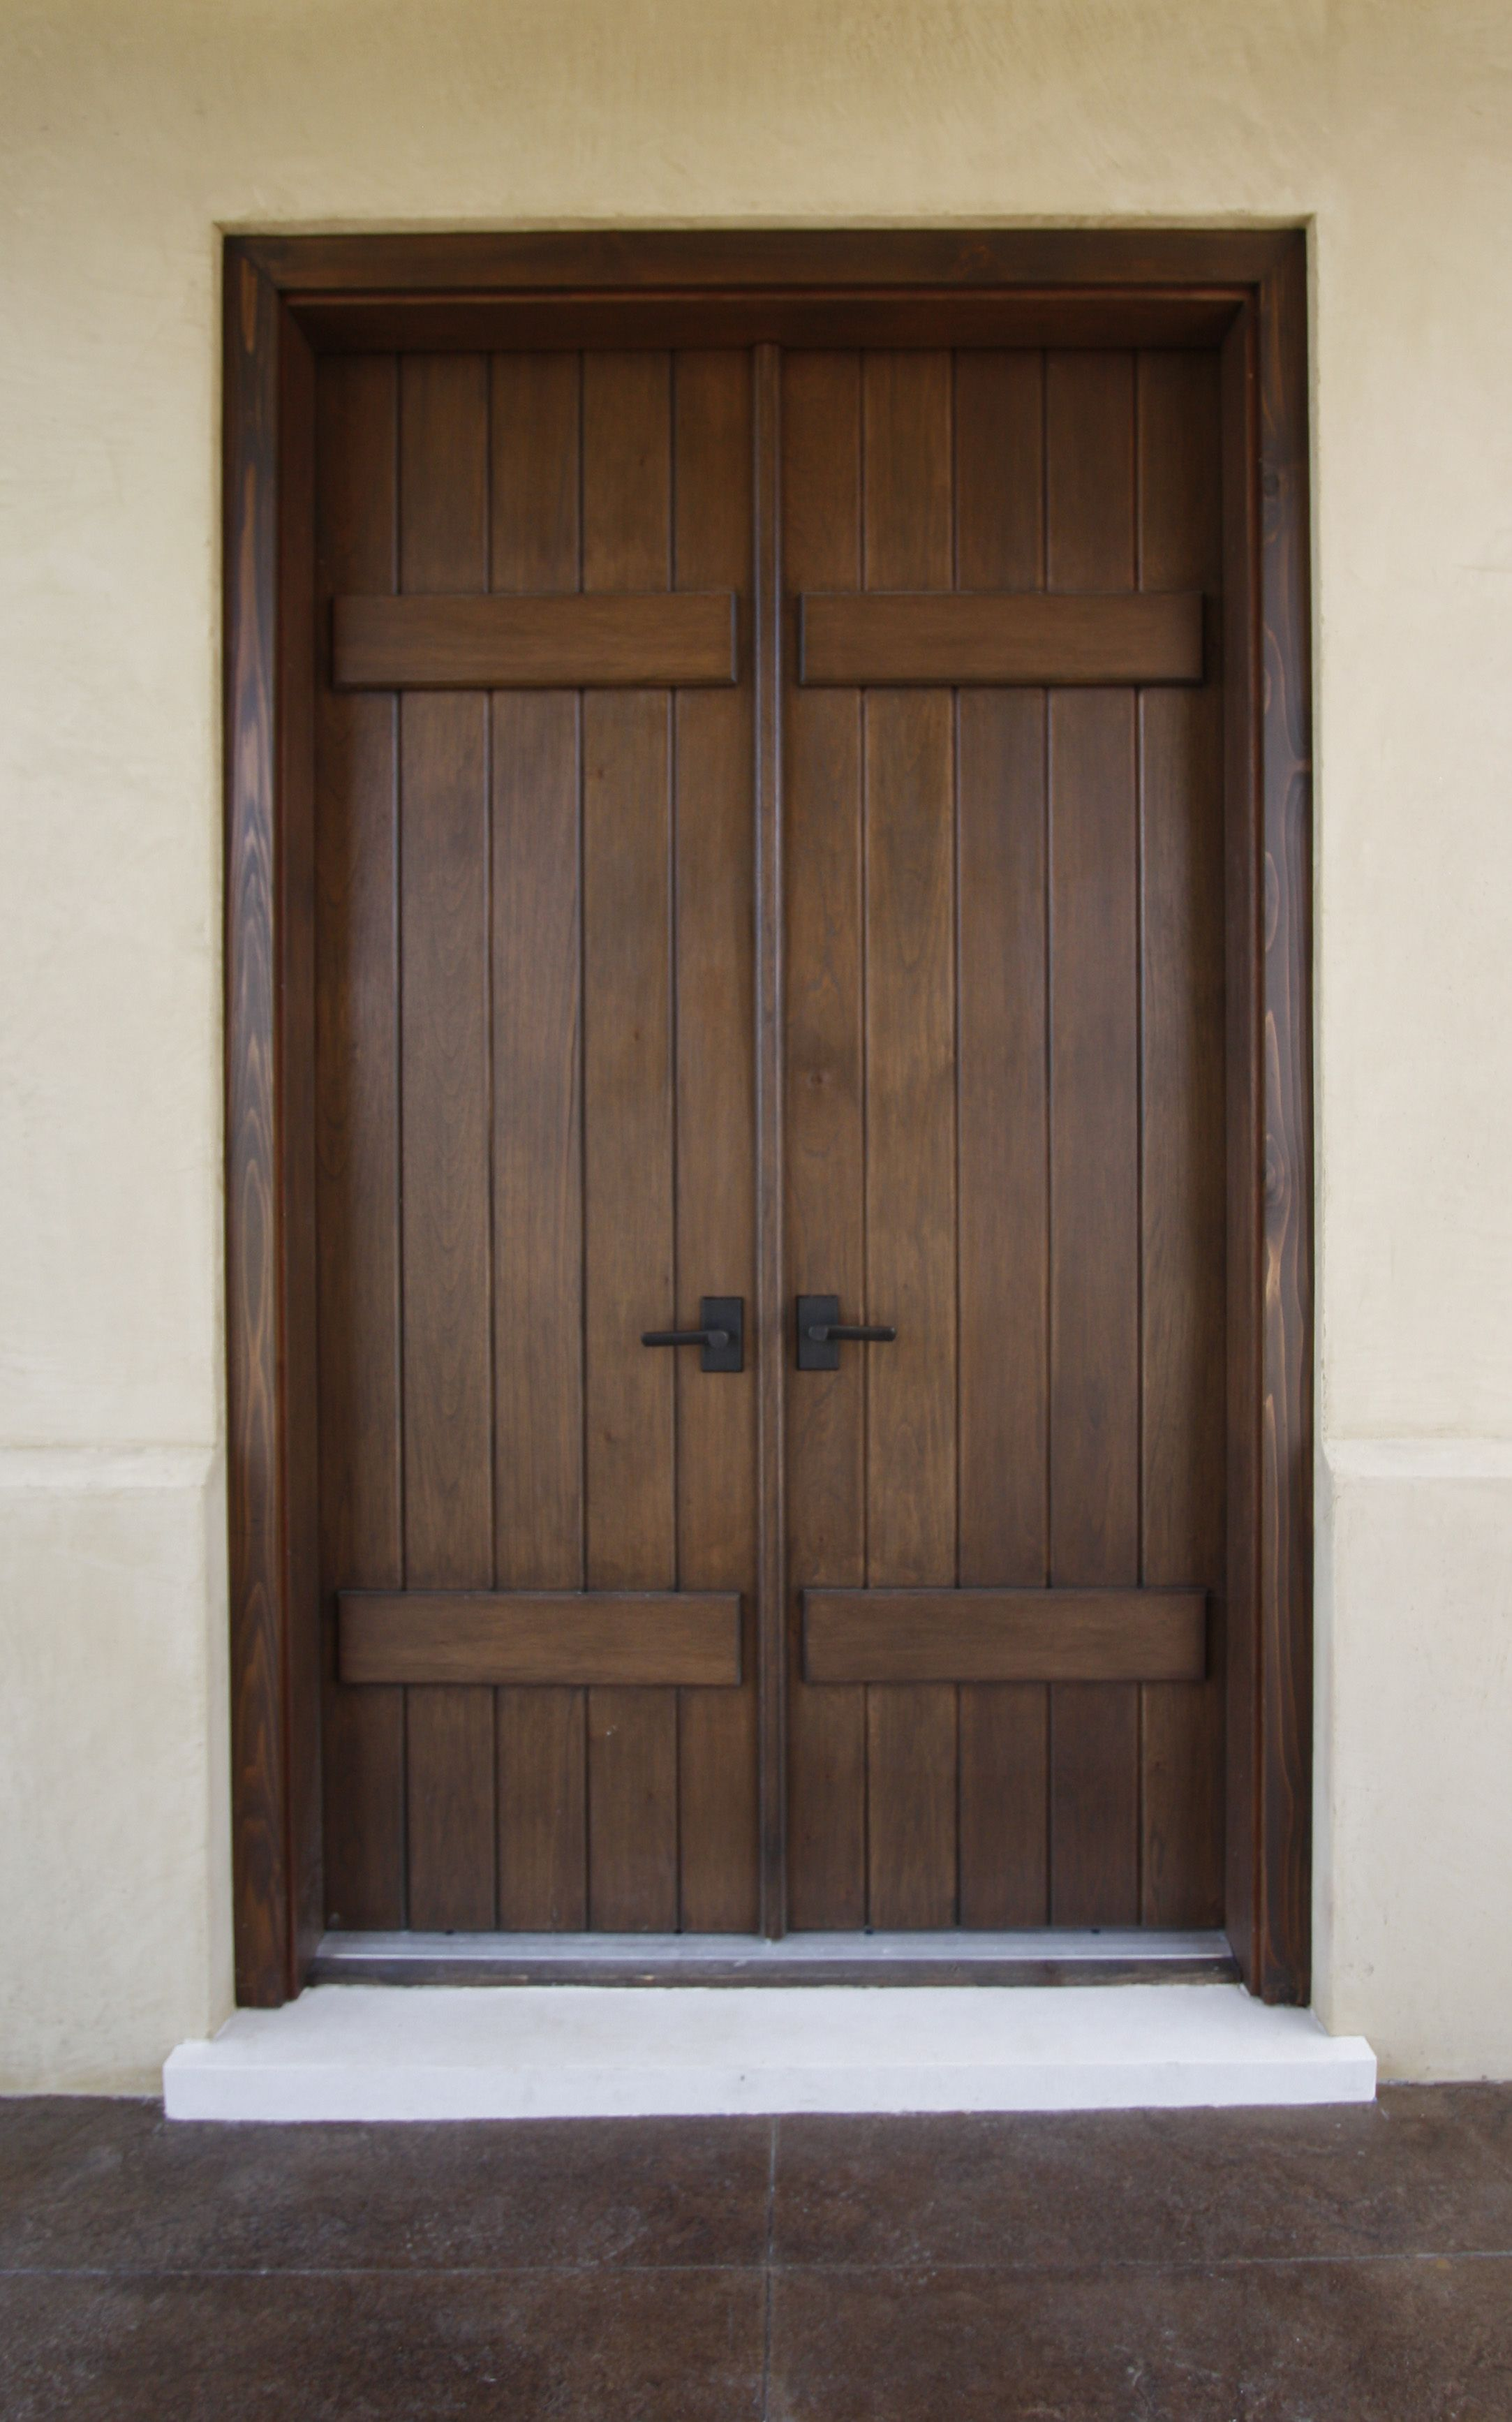 Spanish Cedar Exterior Door In A Board And Batten Style Door Design Interior Doors Door Design